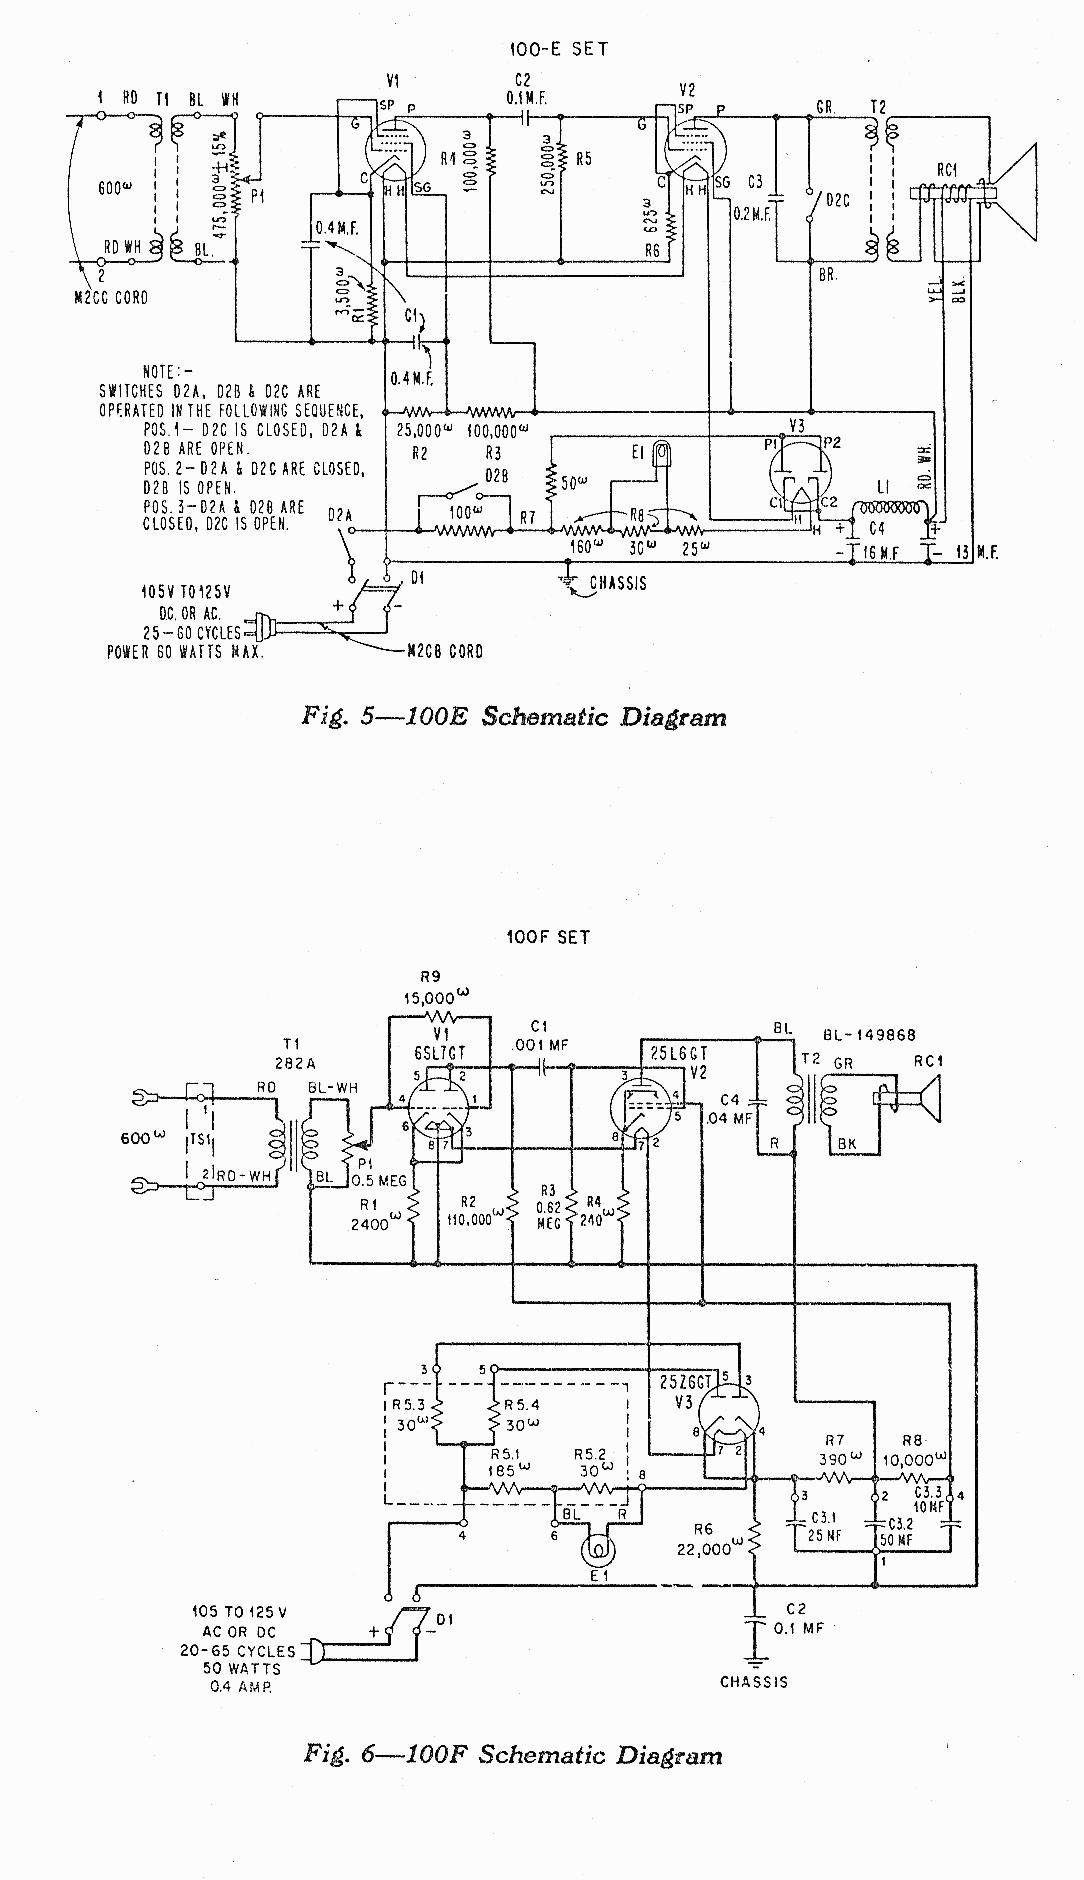 Telephone Technical References 60 Watt Amplifier Circuit Text Of Bsp Figure 3 And 4 Abcd Schematics